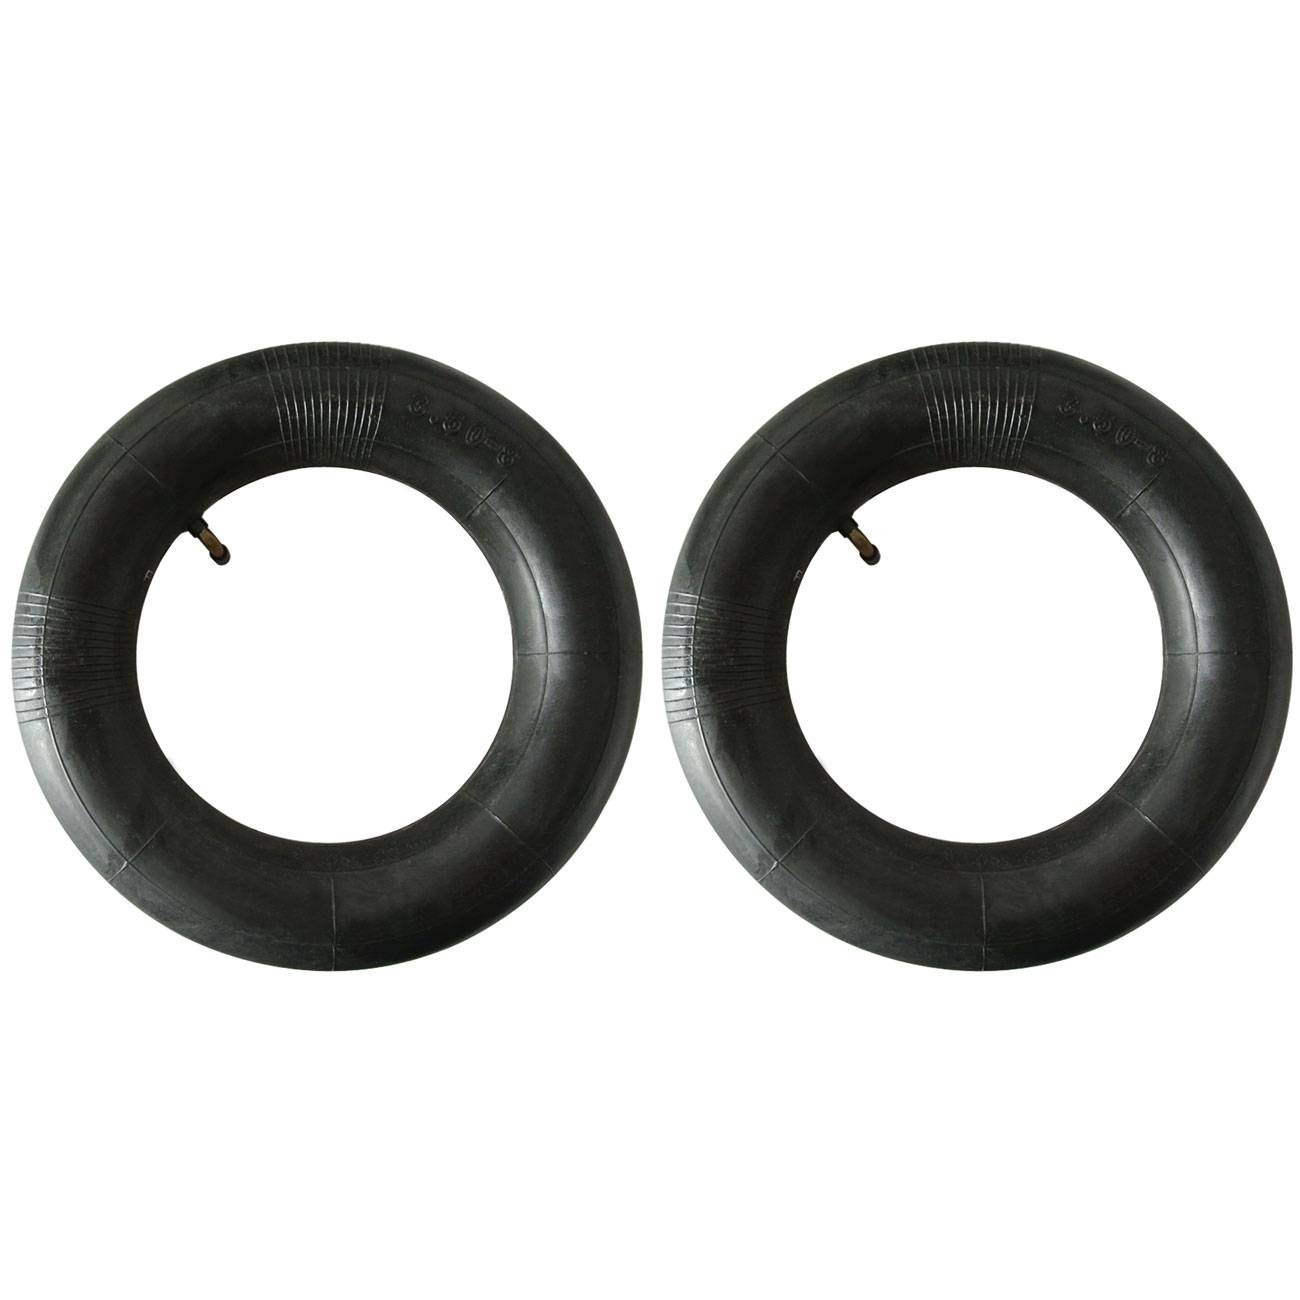 2pcs 3.50/8 Inner Tube For Gas Electric Scooter Bike